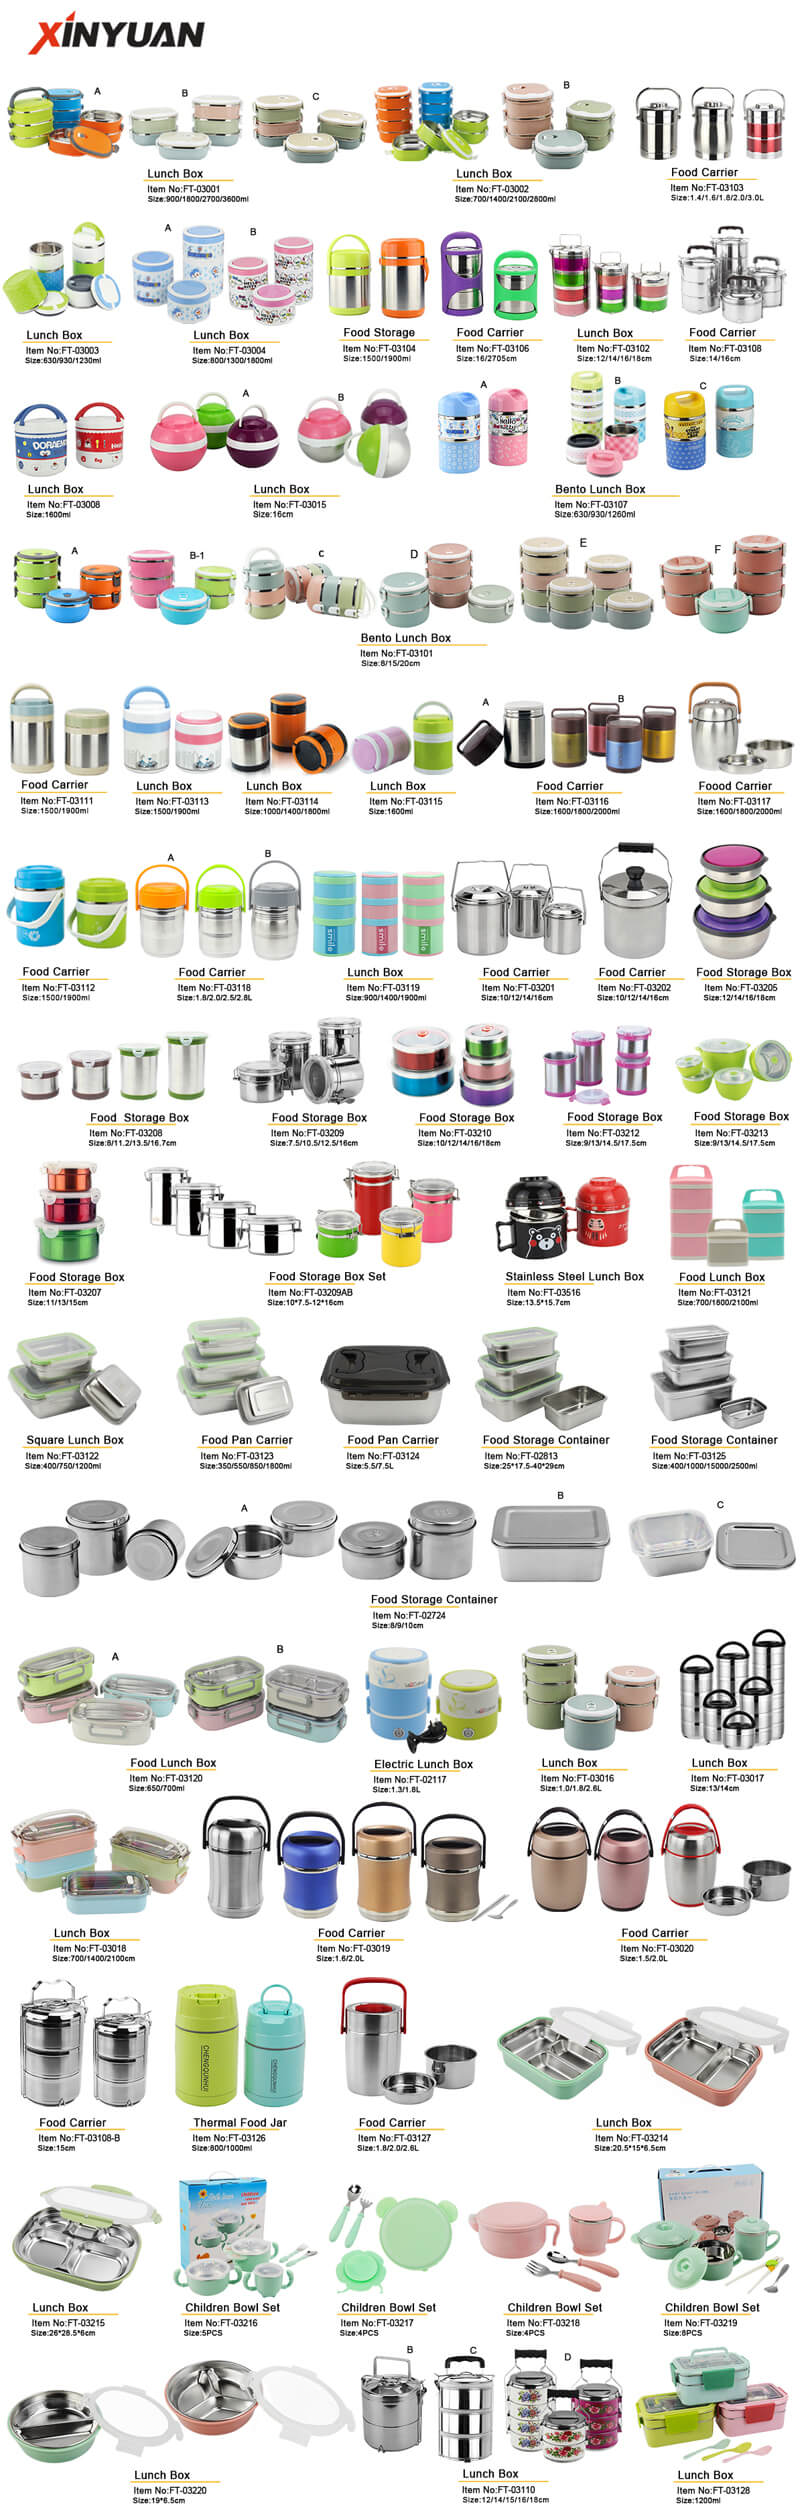 lunch box Product Catalog stainless steel